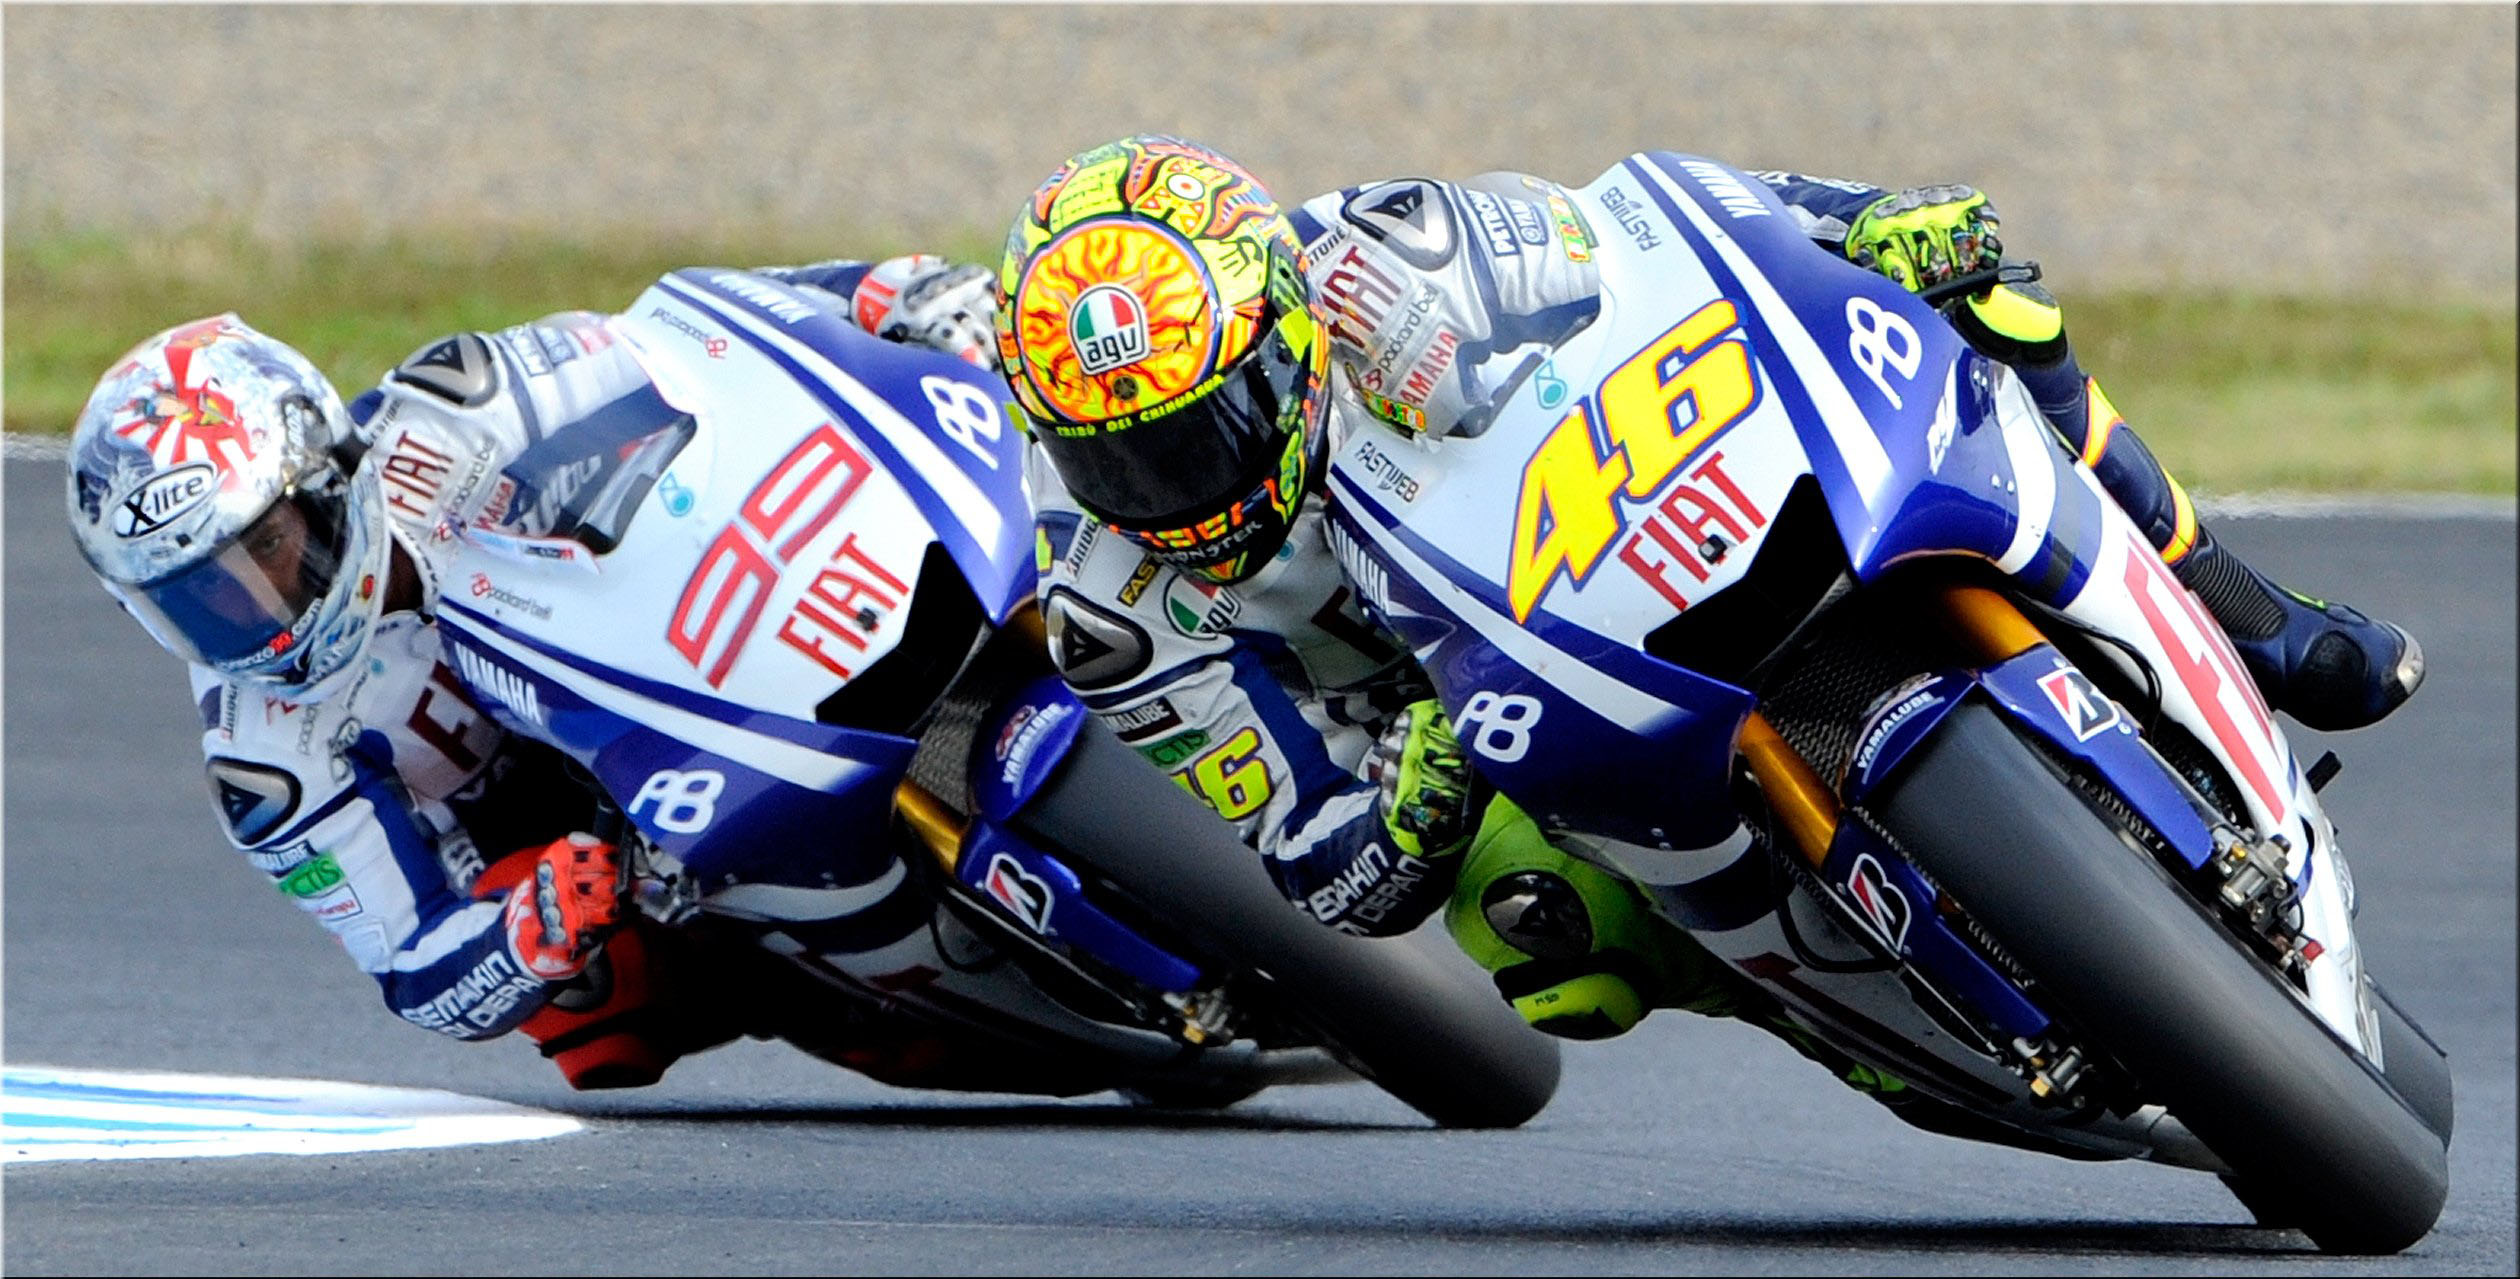 motogp-racing-wallpaper-background-hd-12